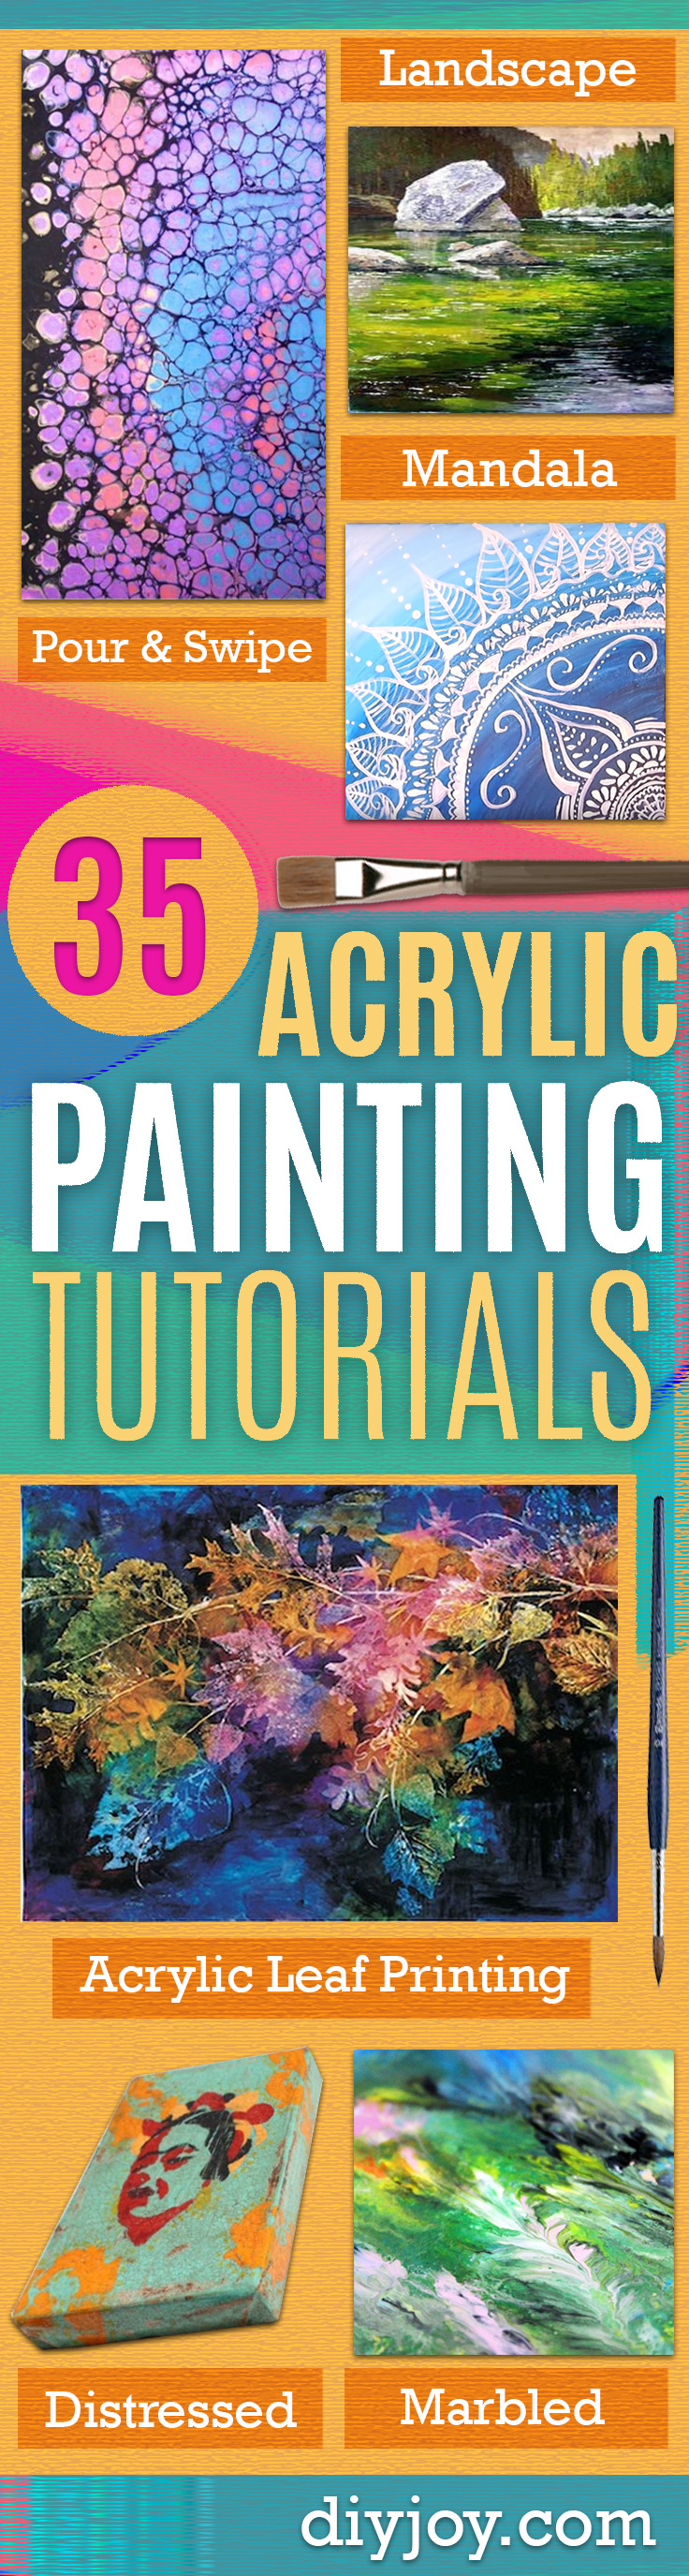 Acrylic Painting Tutorials and Techniques - DIY Acrylic Painting Ideas on Canvas - Make Flowers, Ocean, Sky, Abstract People, Landscapes, Buildings, Animals, Portraits, Sunset With Acrylics - Step by Step Art Lessons for Beginners - Easy Video Tutorials and How To for Making DIY Art